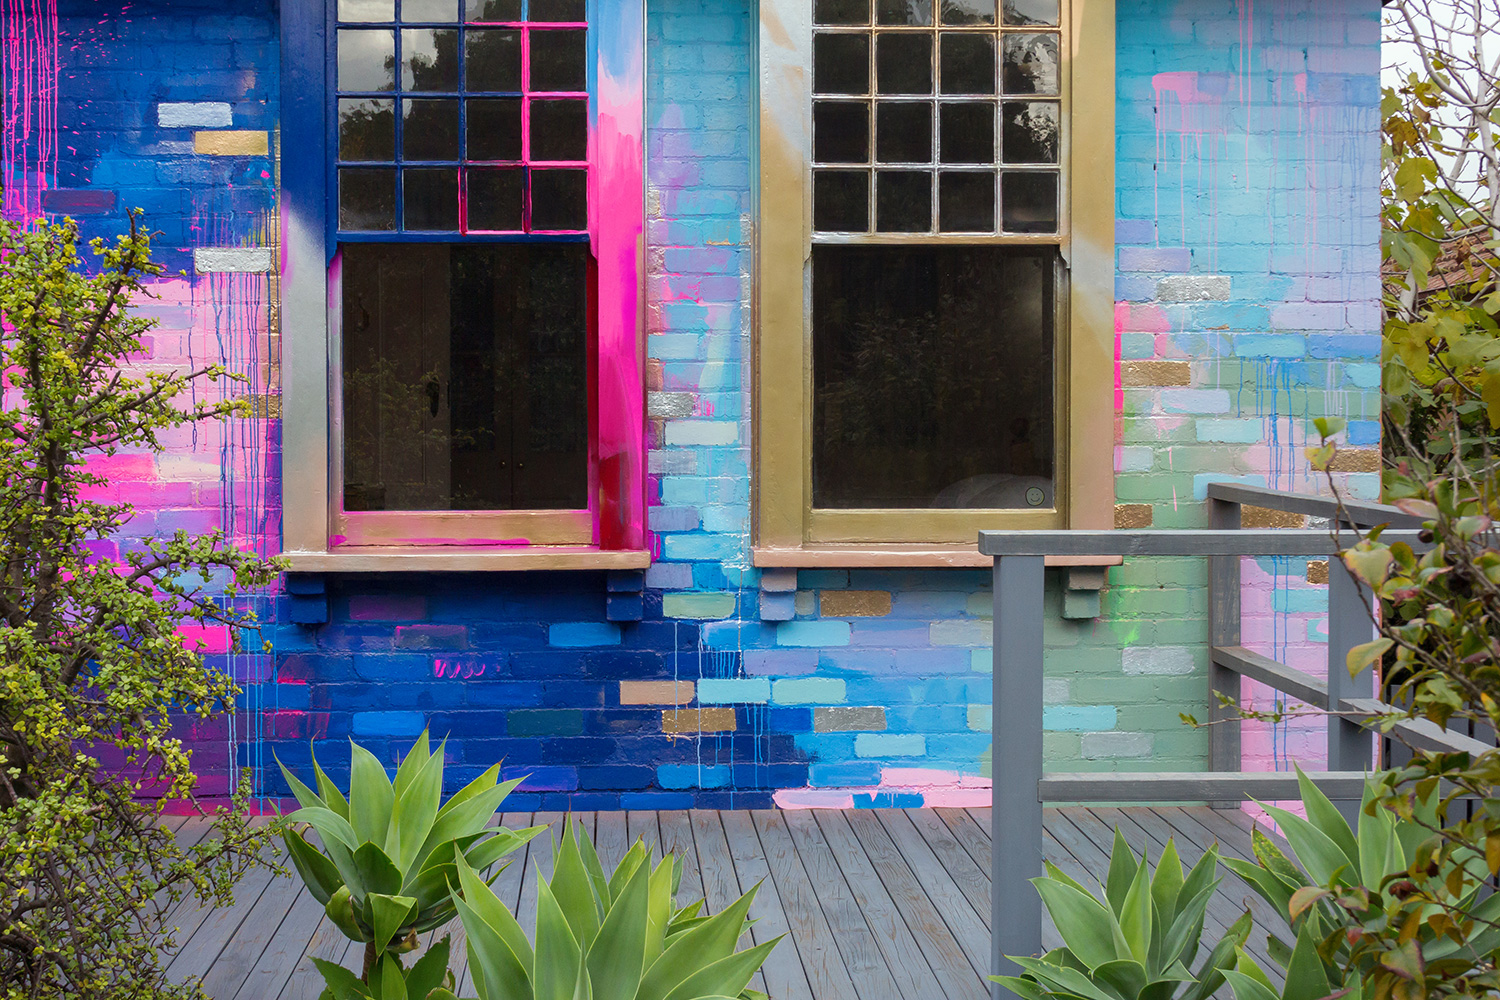 Vibrant abstract exterior mural that covers a residential home with a bright color palette of mostly pink, blue and metallic. Pops of color highlight the bricks and contrast with the garden foliage.